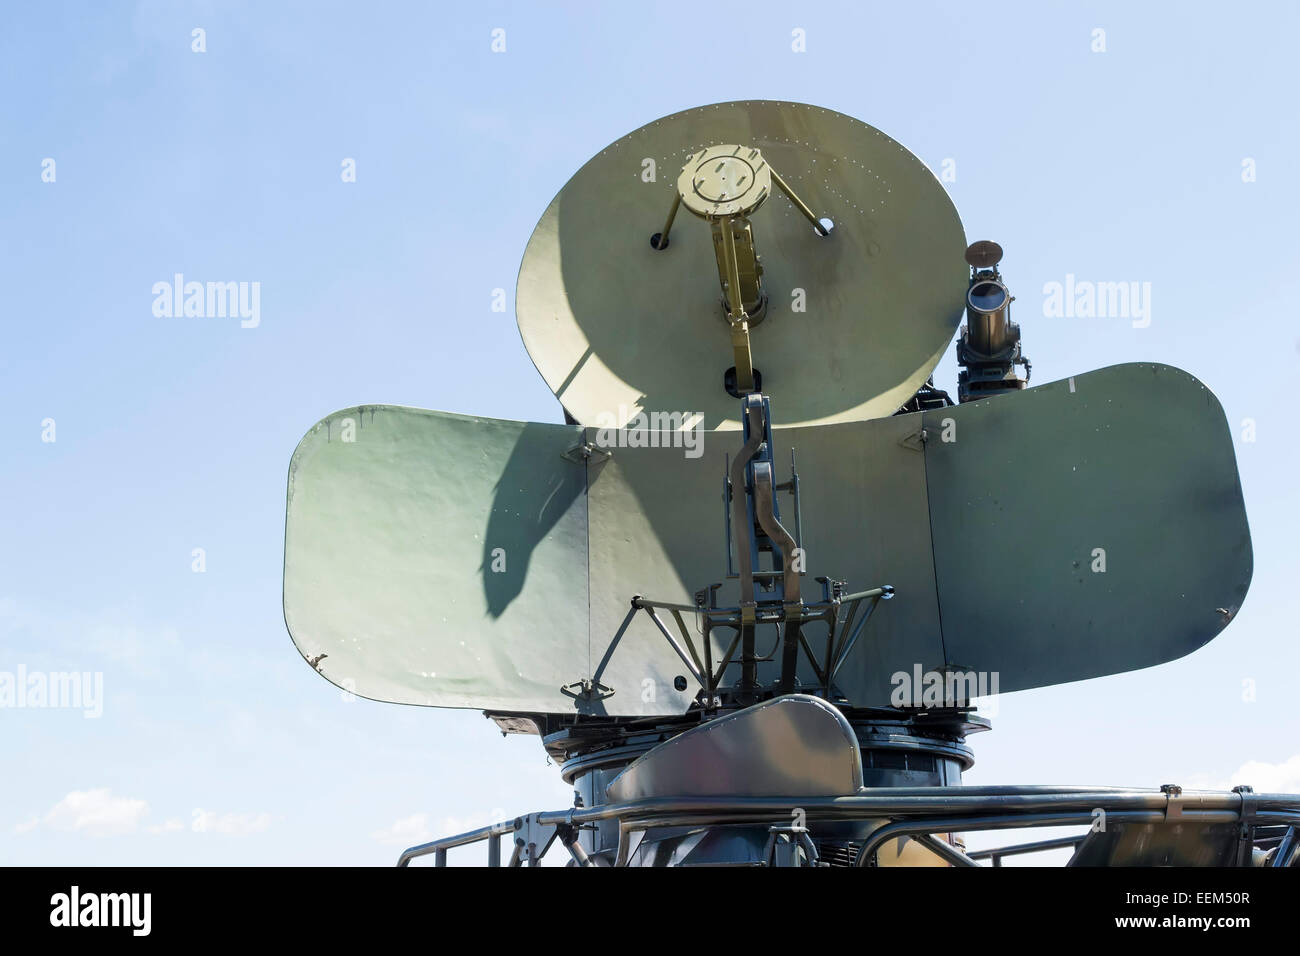 photo radar technology essay Photo: this giant radar detector at thule air base, greenland is designed to detect incoming nuclear missiles it's a key part of the us ballistic missile early warning system (bmews) photo by michael tolzmann courtesy of us air force.